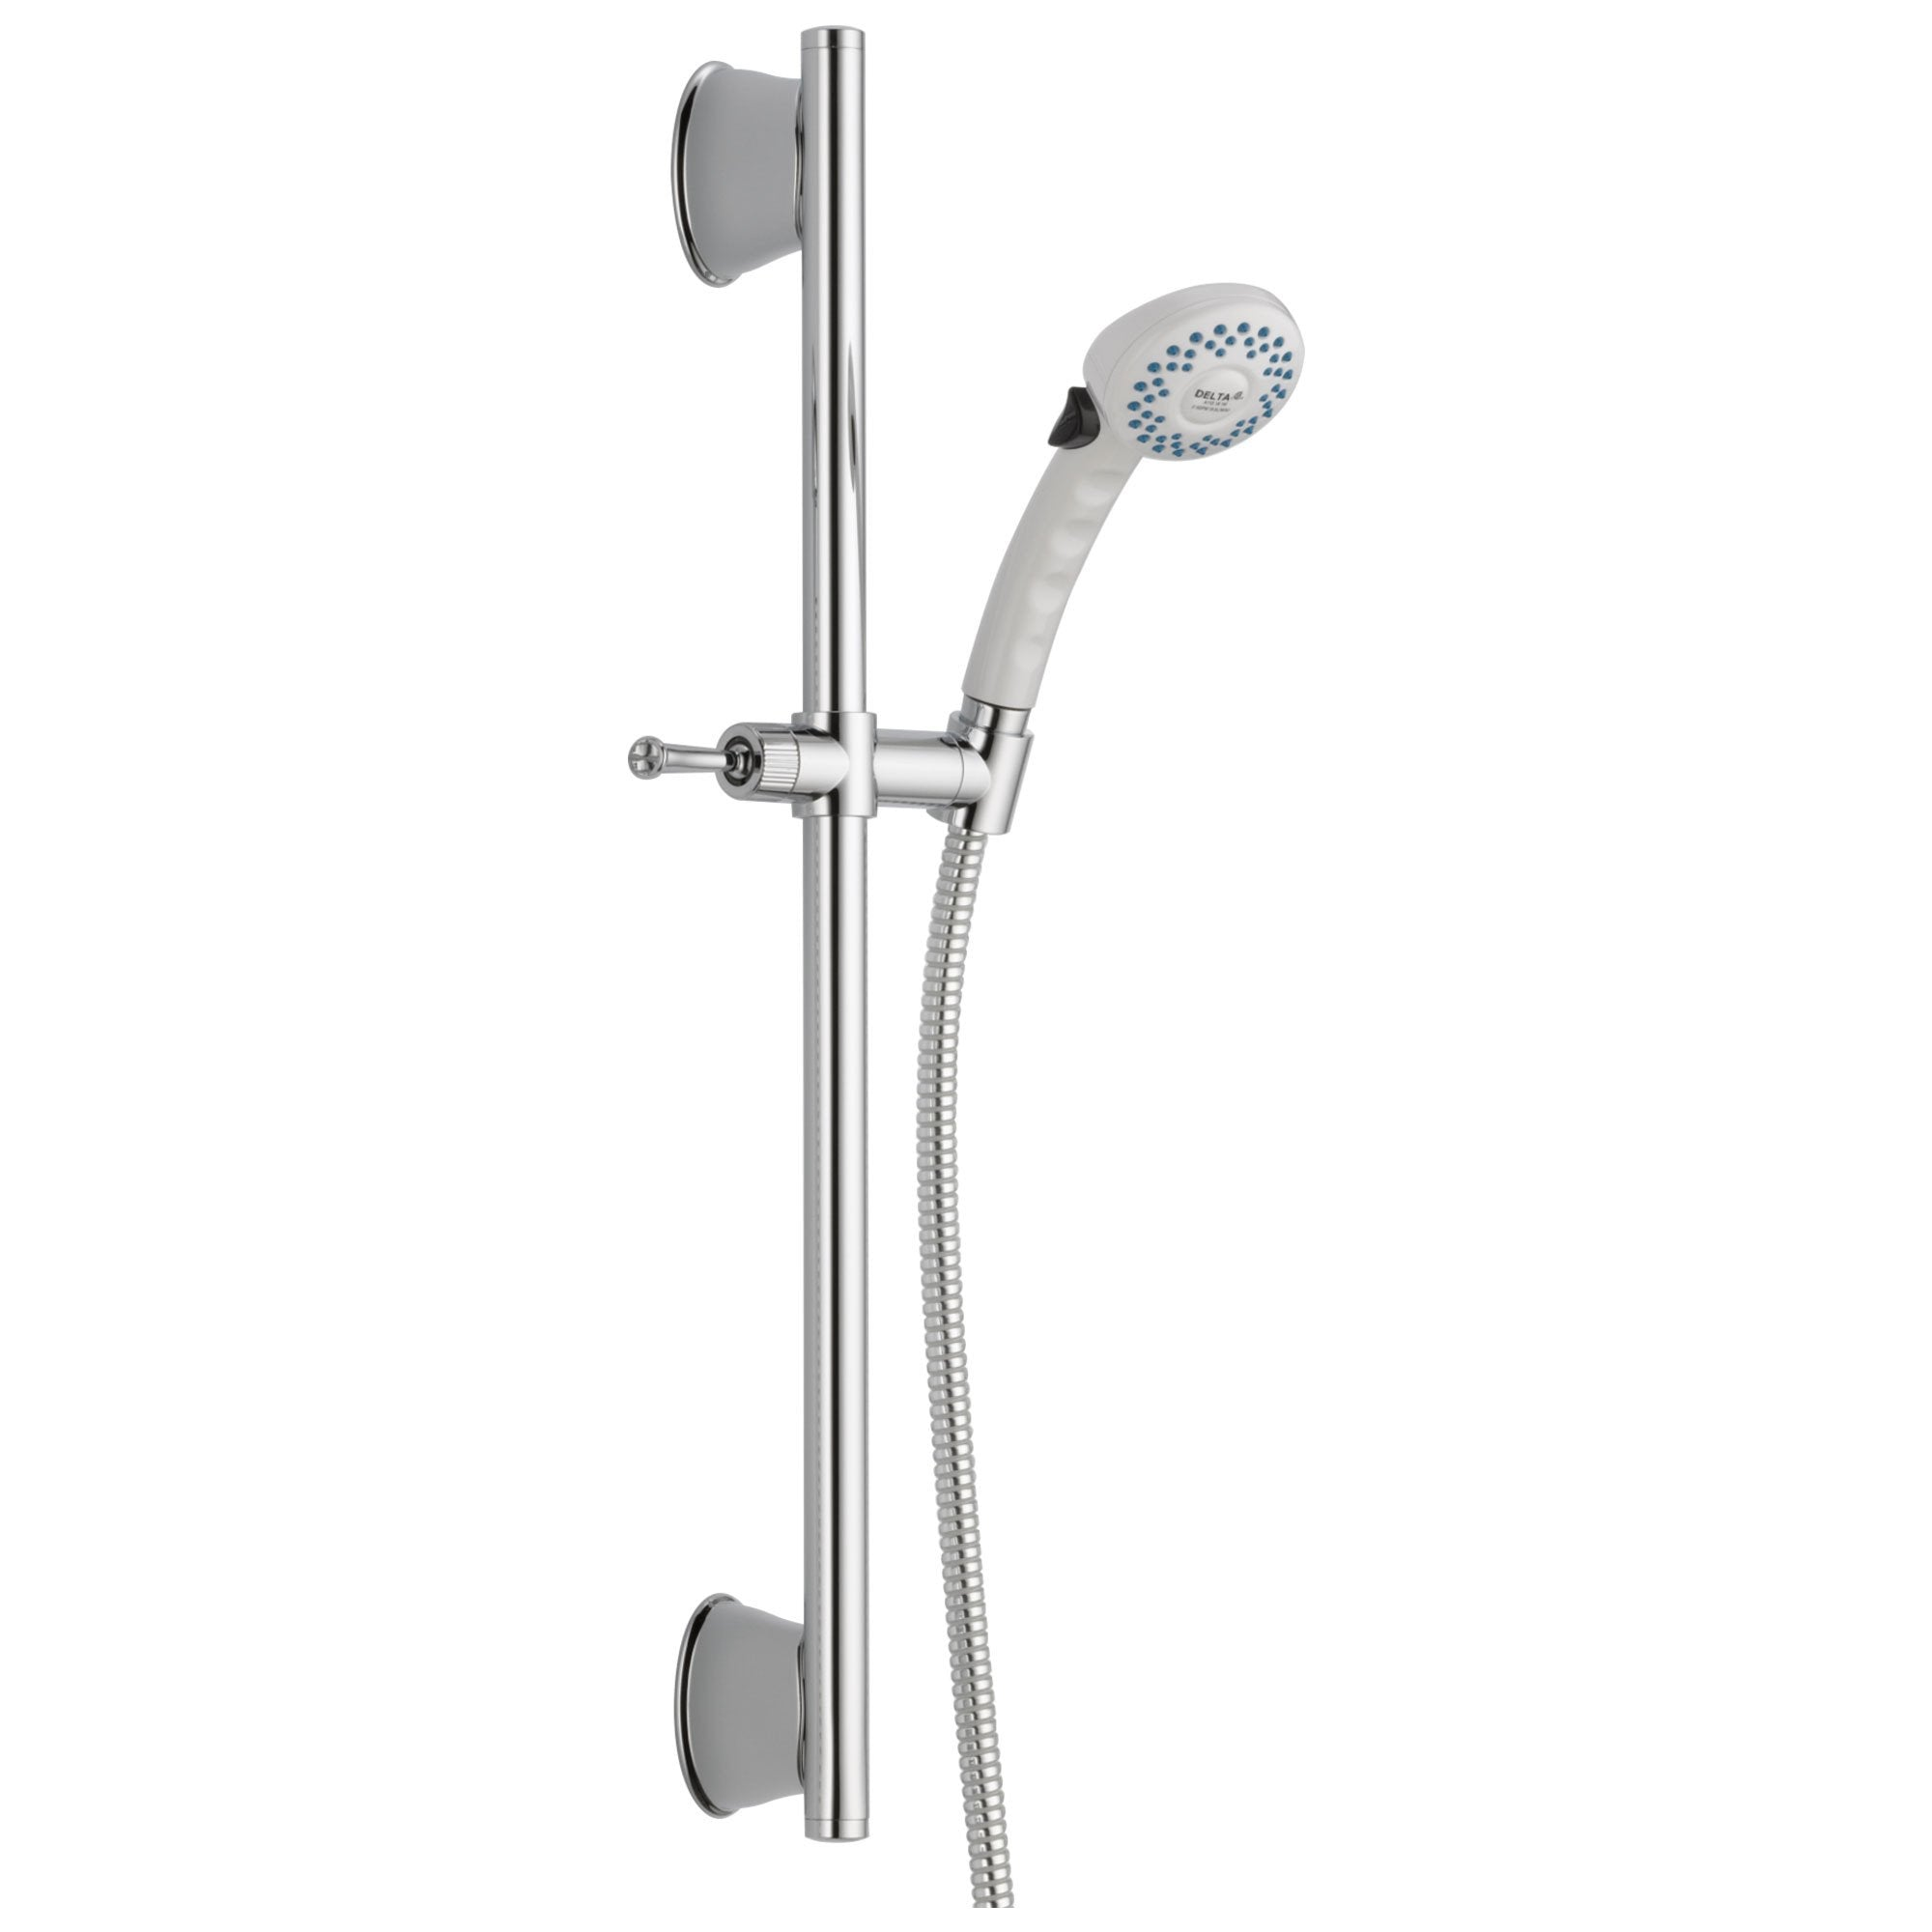 Delta Universal Showering Components Collection White Finish Slide Bar Hand Shower with Hose D51539WHB